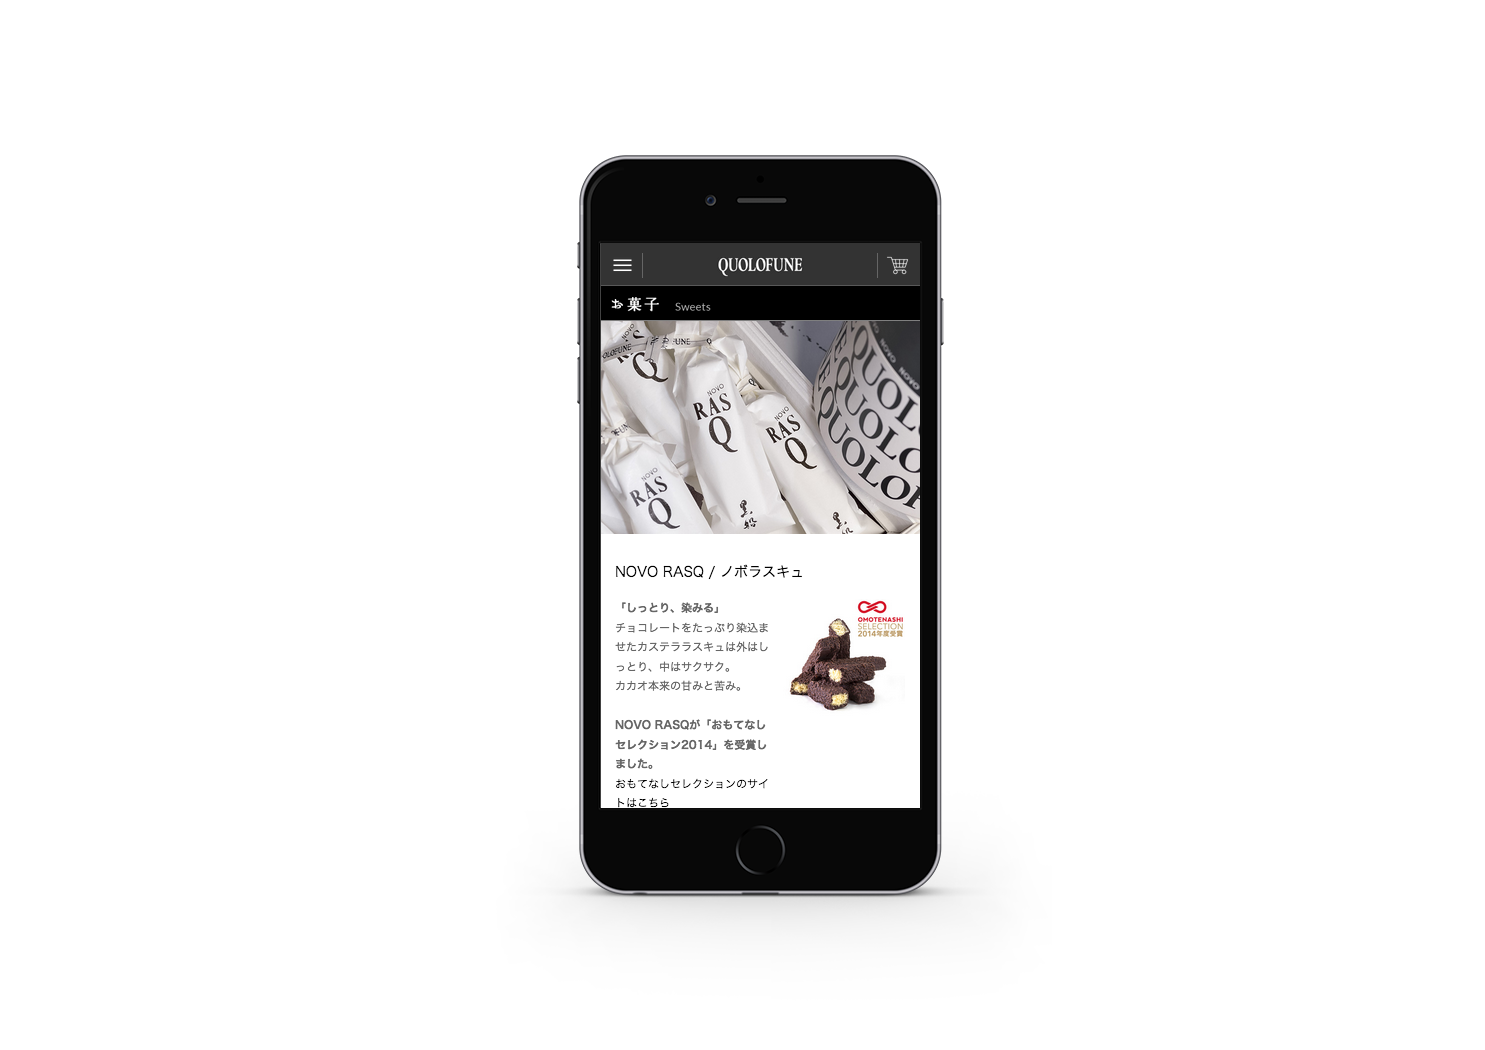 QUOLOFUNE Official Smartphone site 2015